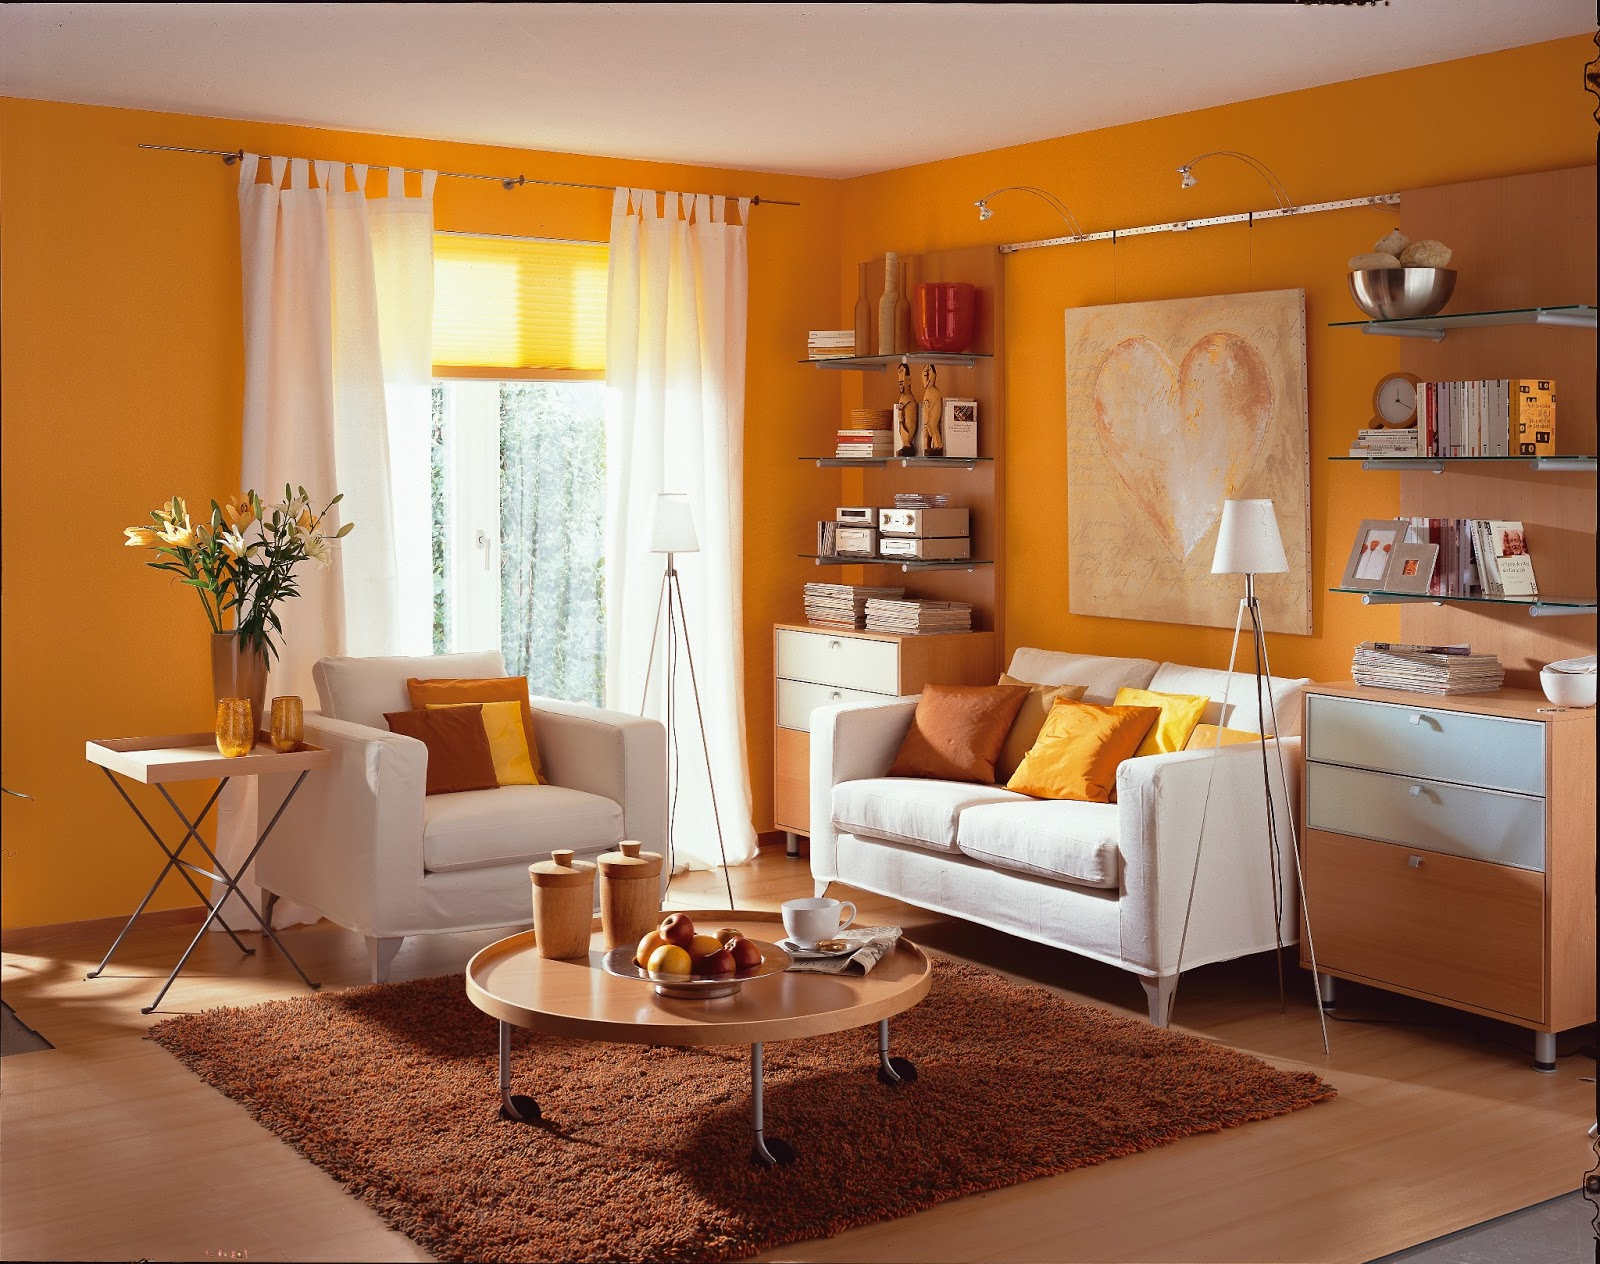 Salas color naranja ideas para decorar dise ar y for Decoraciones de hogares interiores